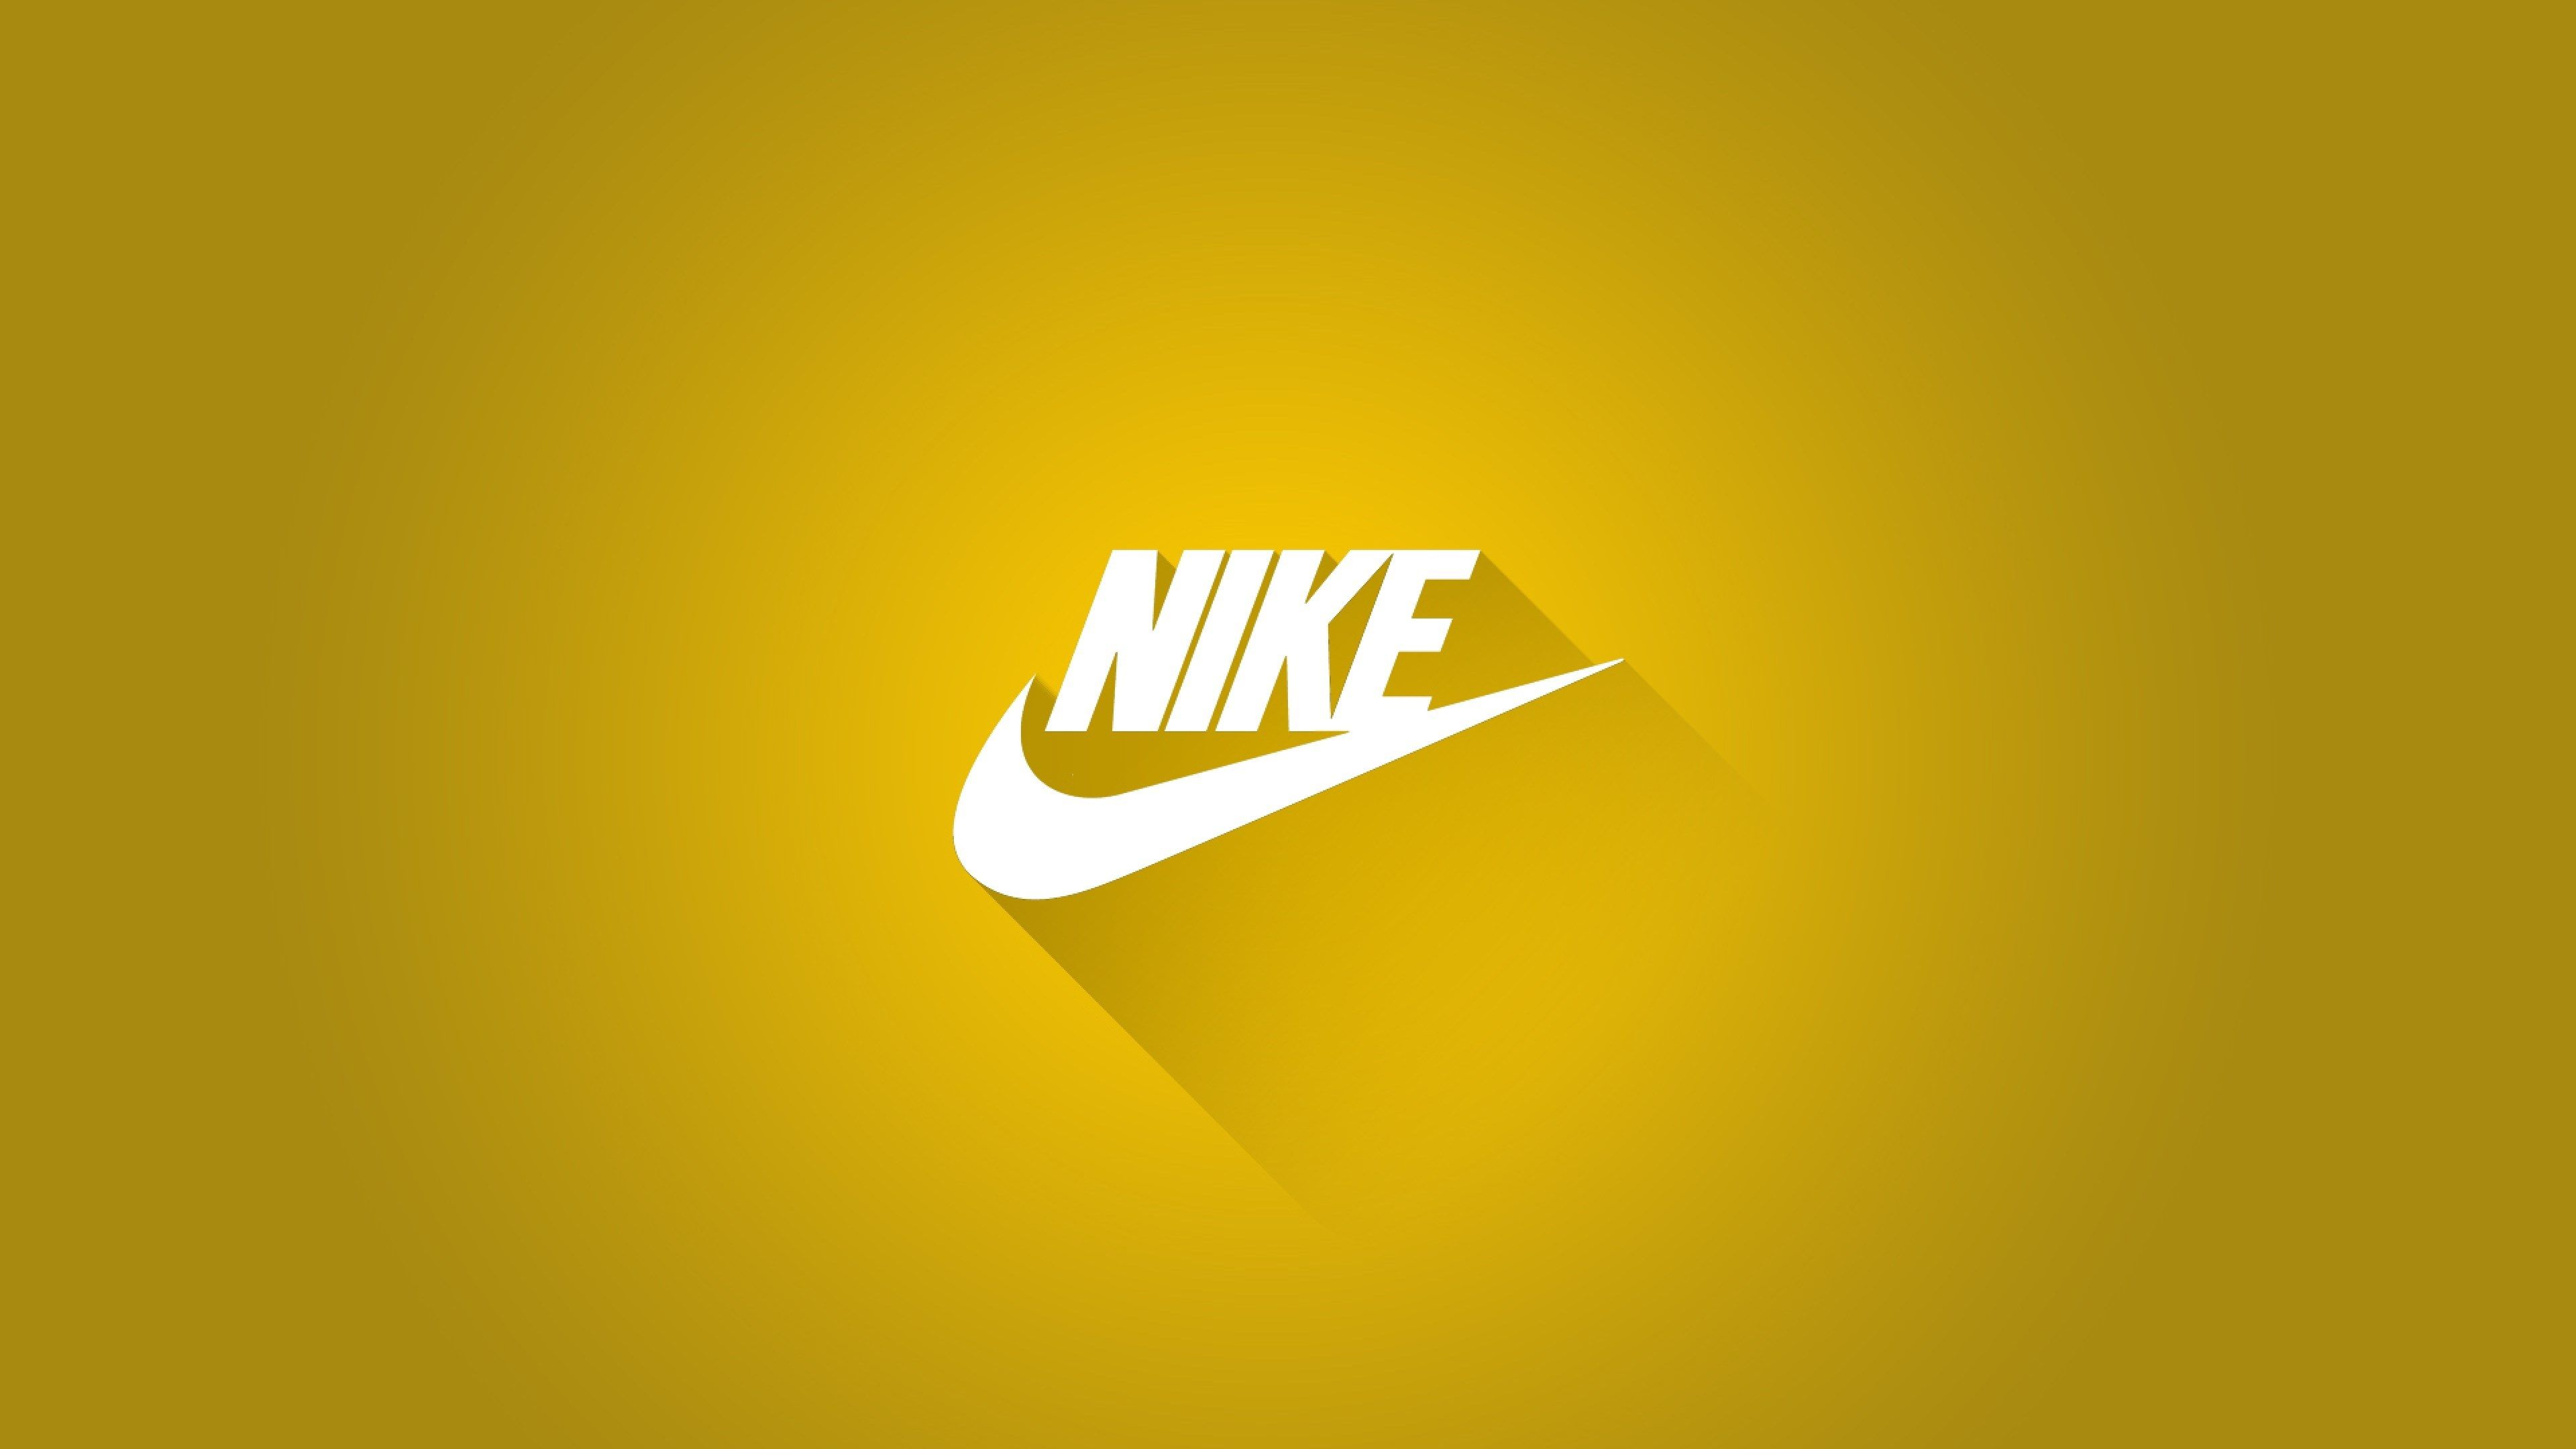 new nike wallpaper